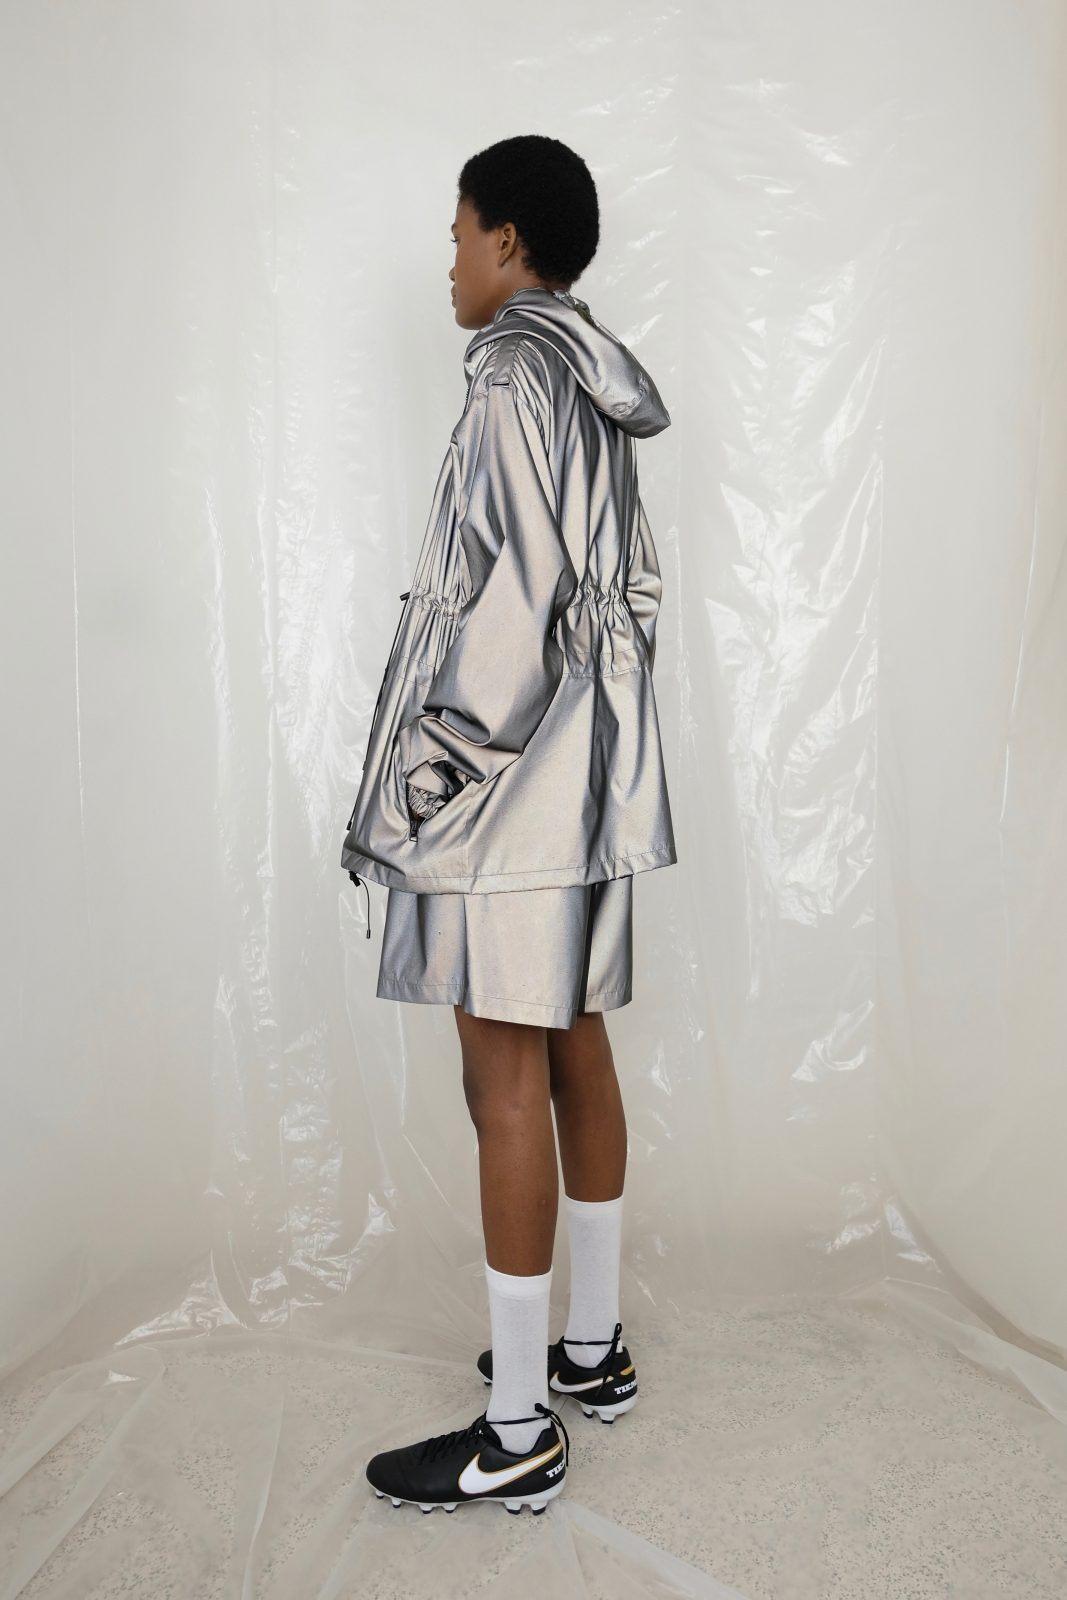 Latest from WeDú blends fusion sportswear with traditional African Culture